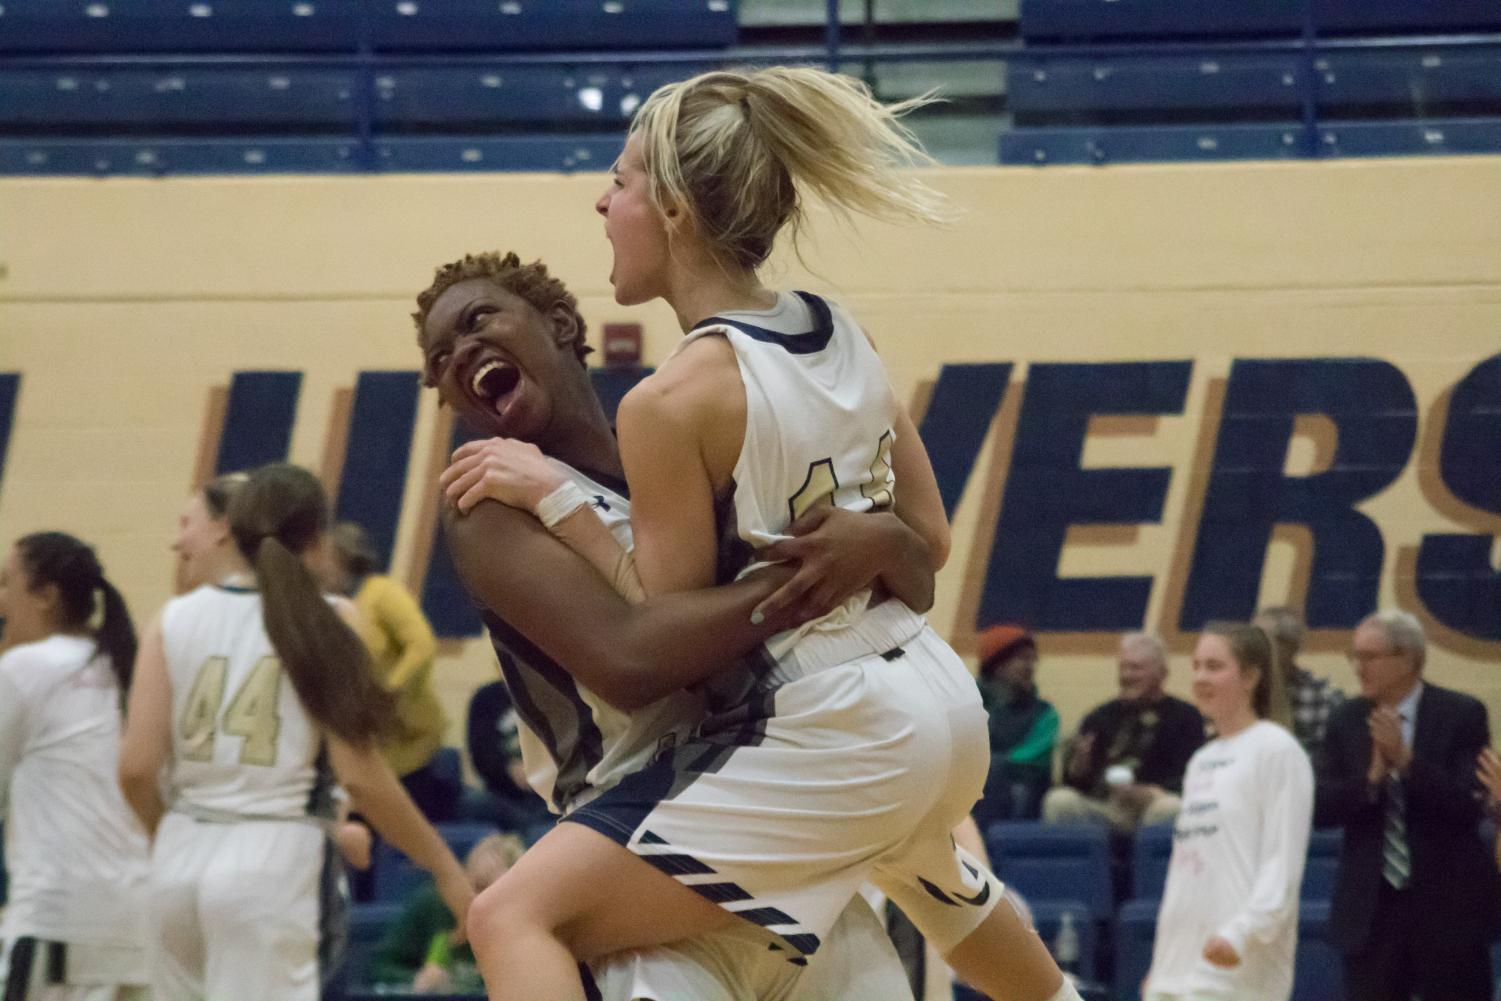 Chelbi Graham and Kahrin Spear celebrate.